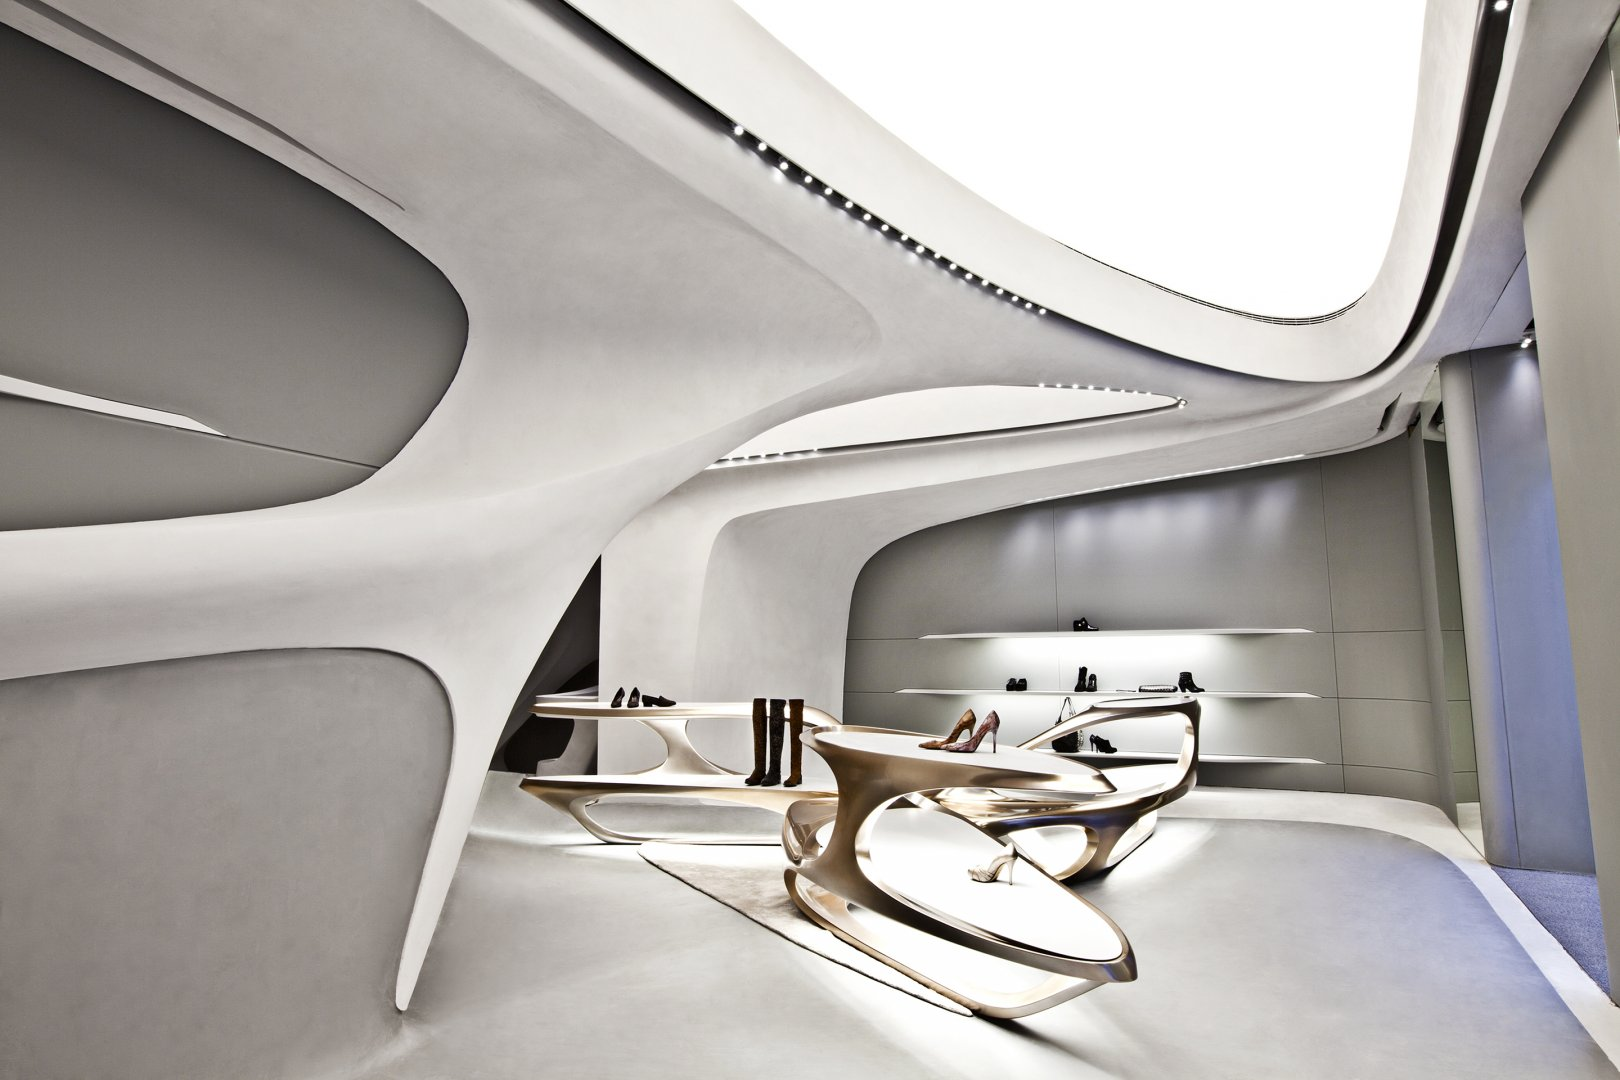 Deconstructivism Furniture Interior Design ~ Stuart weitzman flagship store by zaha hadid